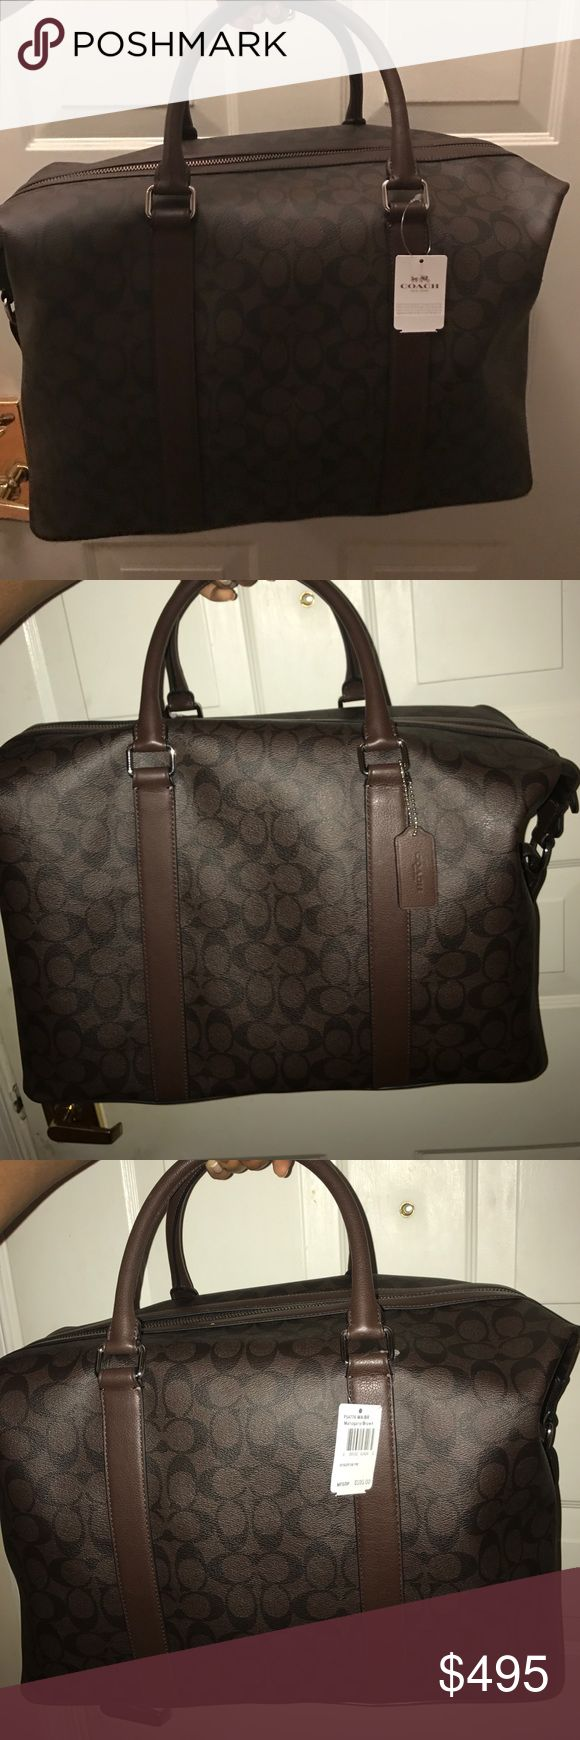 Coach Travel bag Mahogany/ Brown Coach Carry On. Fits in over head compartment. Authentic. Original price 595.00 Coach Bags Travel Bags